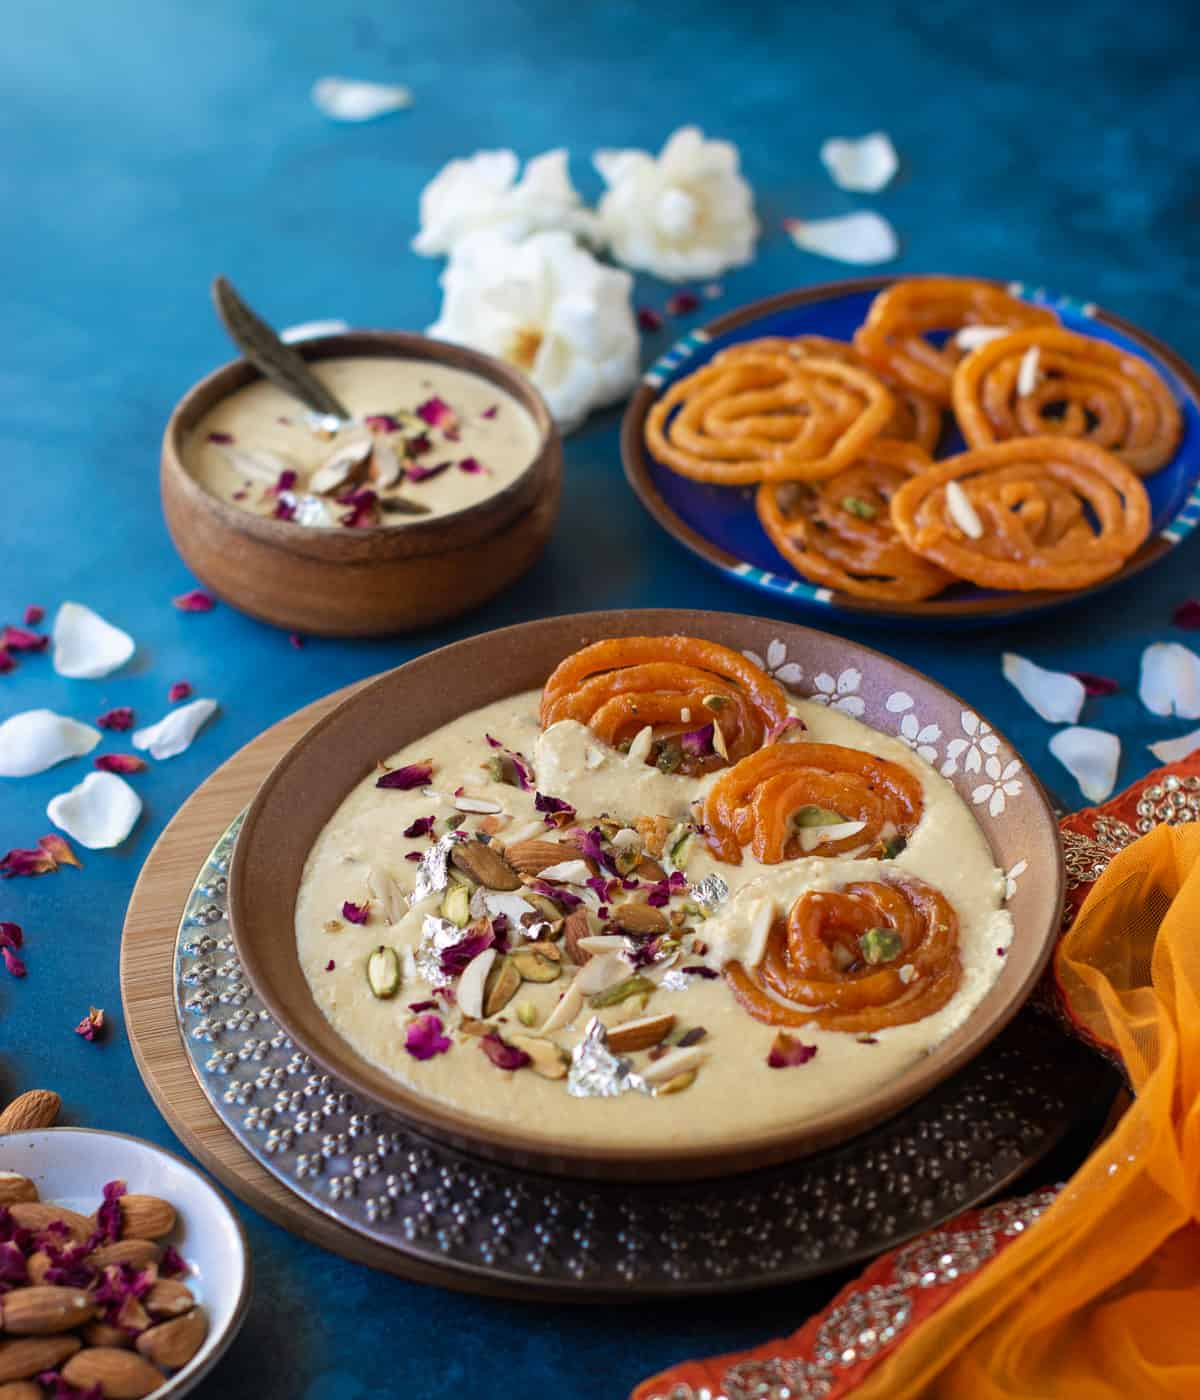 Jalebis and rabdi in a brown dish with more jalebis at the back